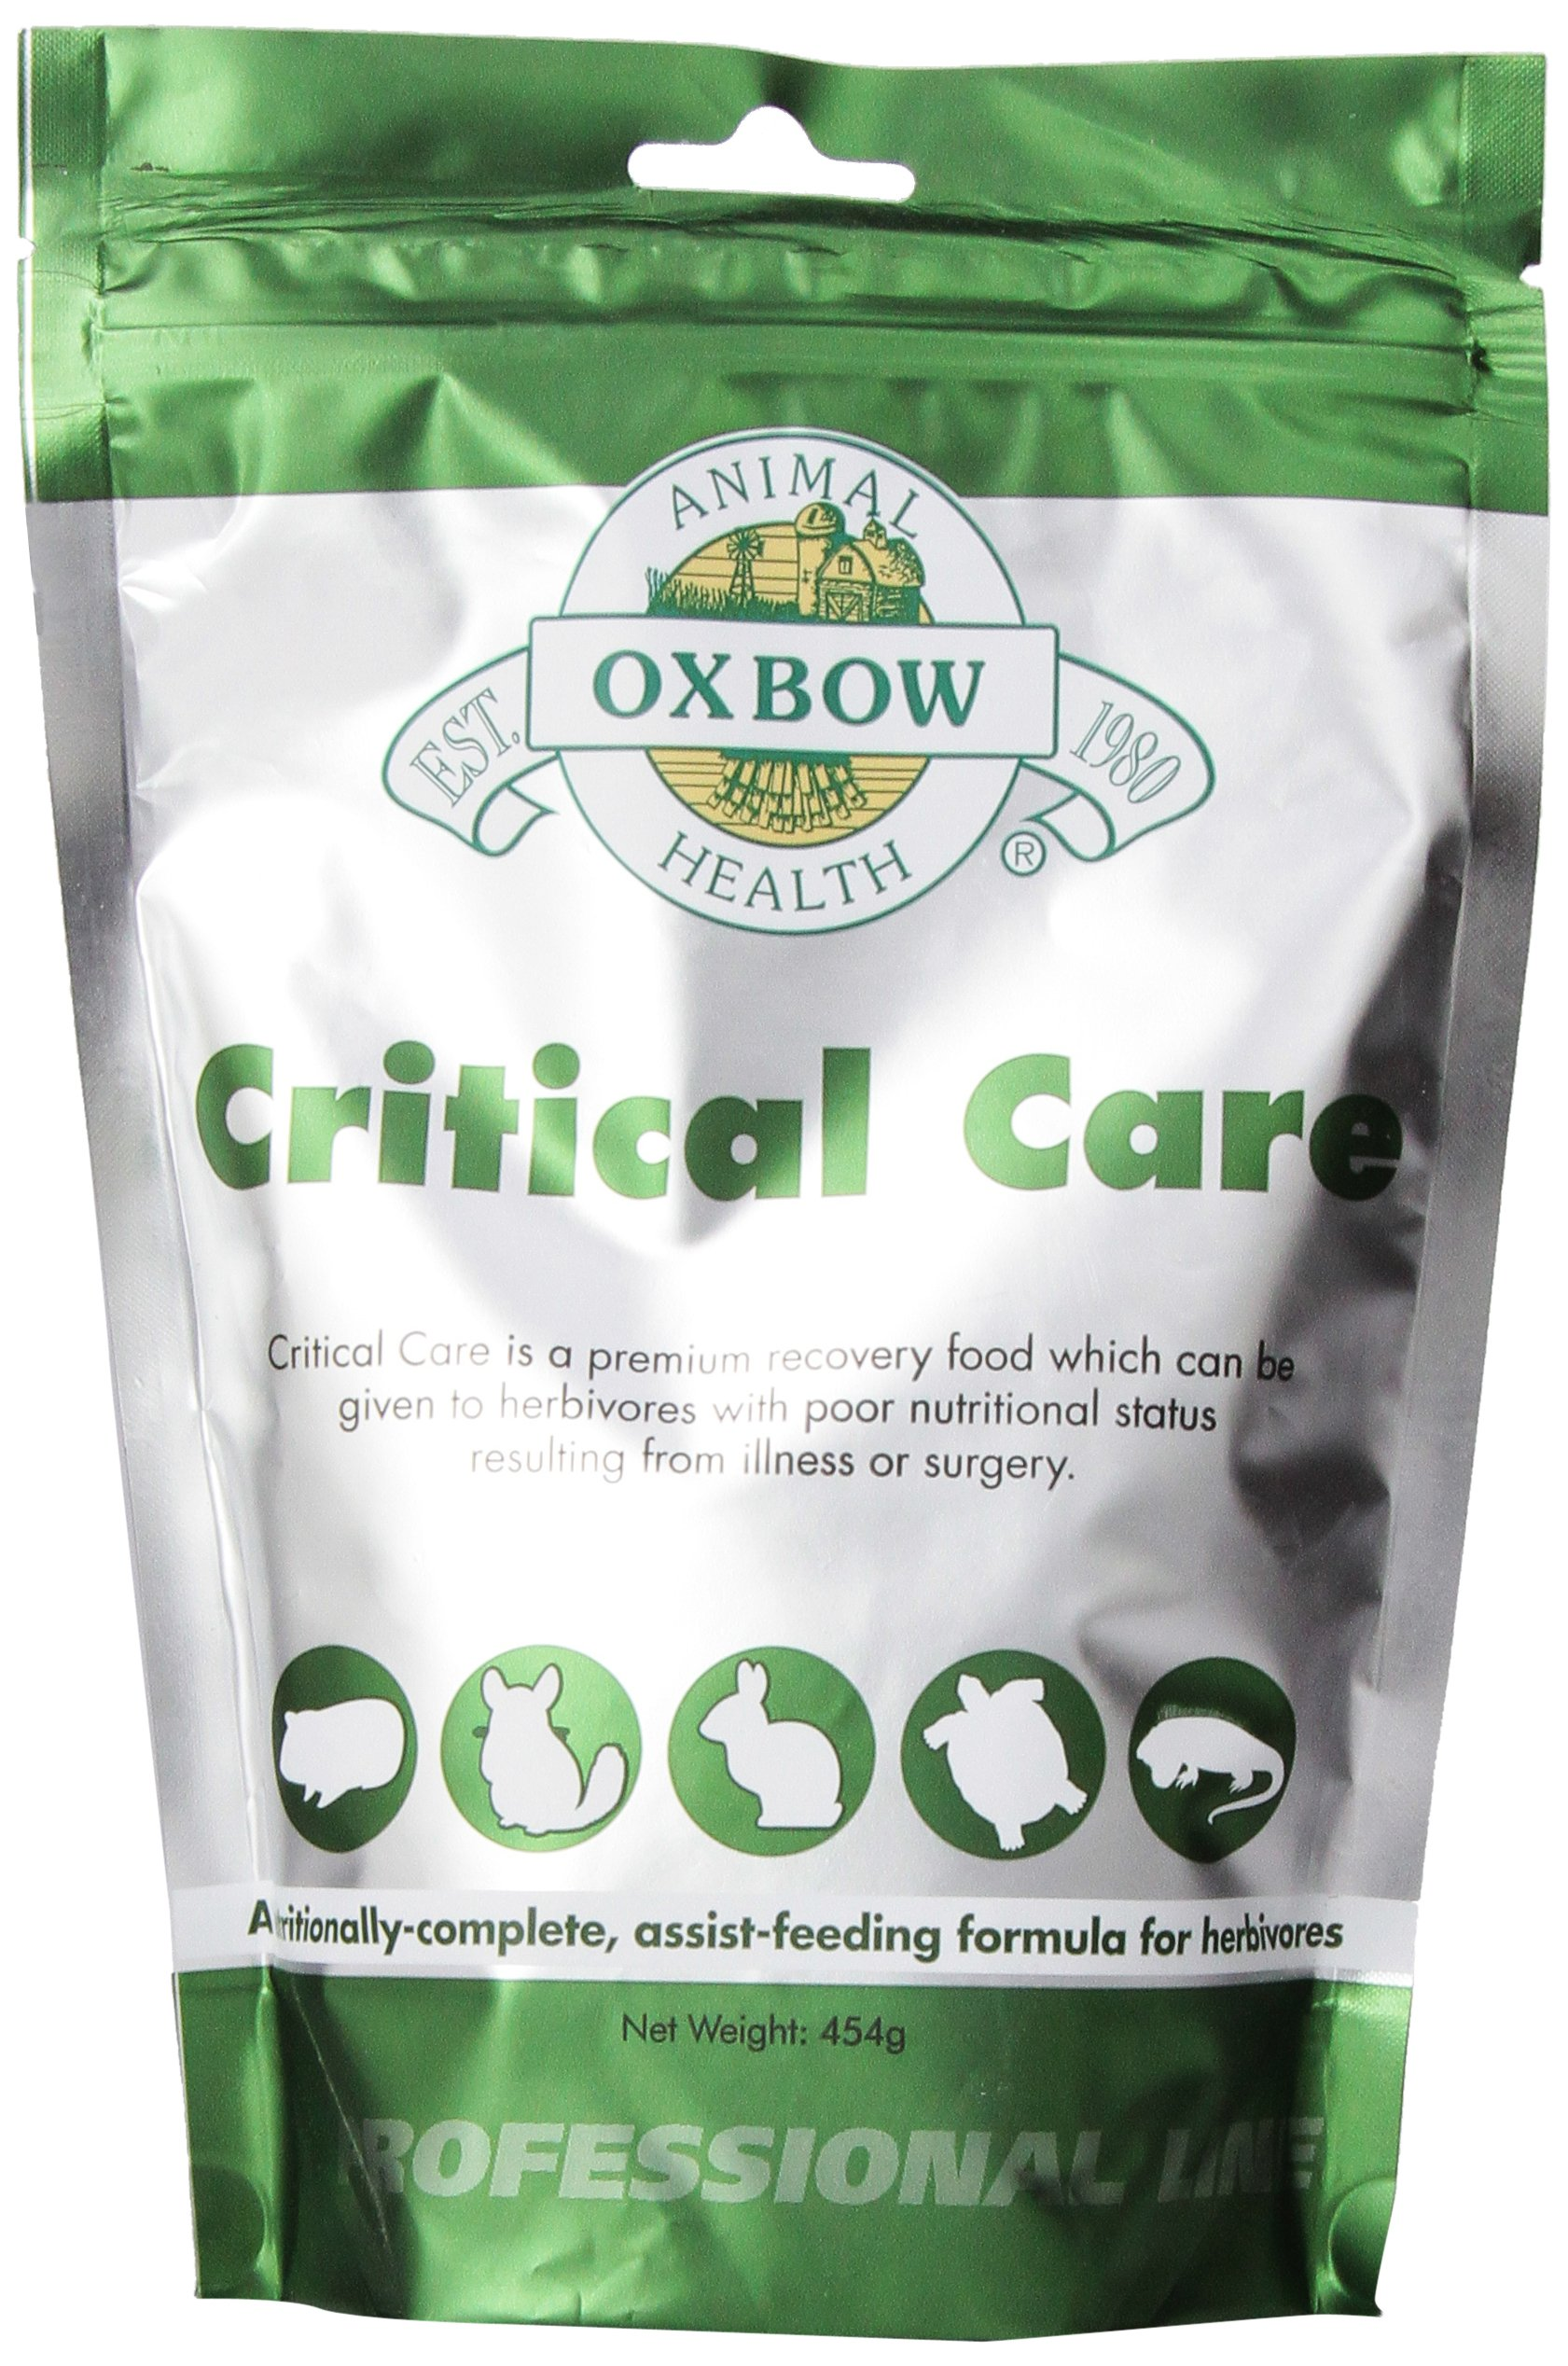 Oxbow Critical Care Pet Supplement, 1-Pound by Oxbow